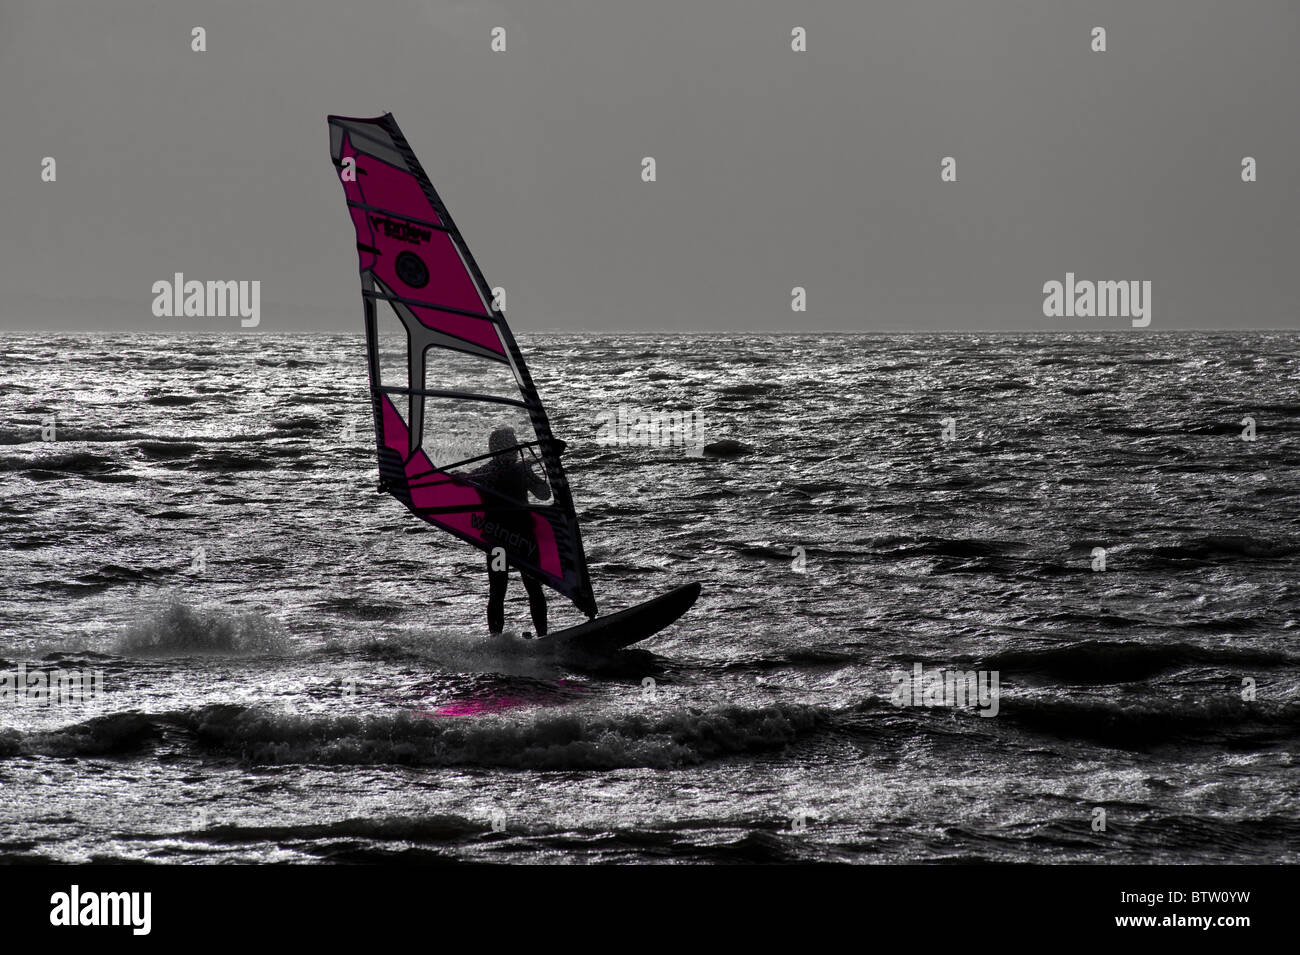 Lone windsurfer silhouetted against grey sky with color of sail enhanced. - Stock Image